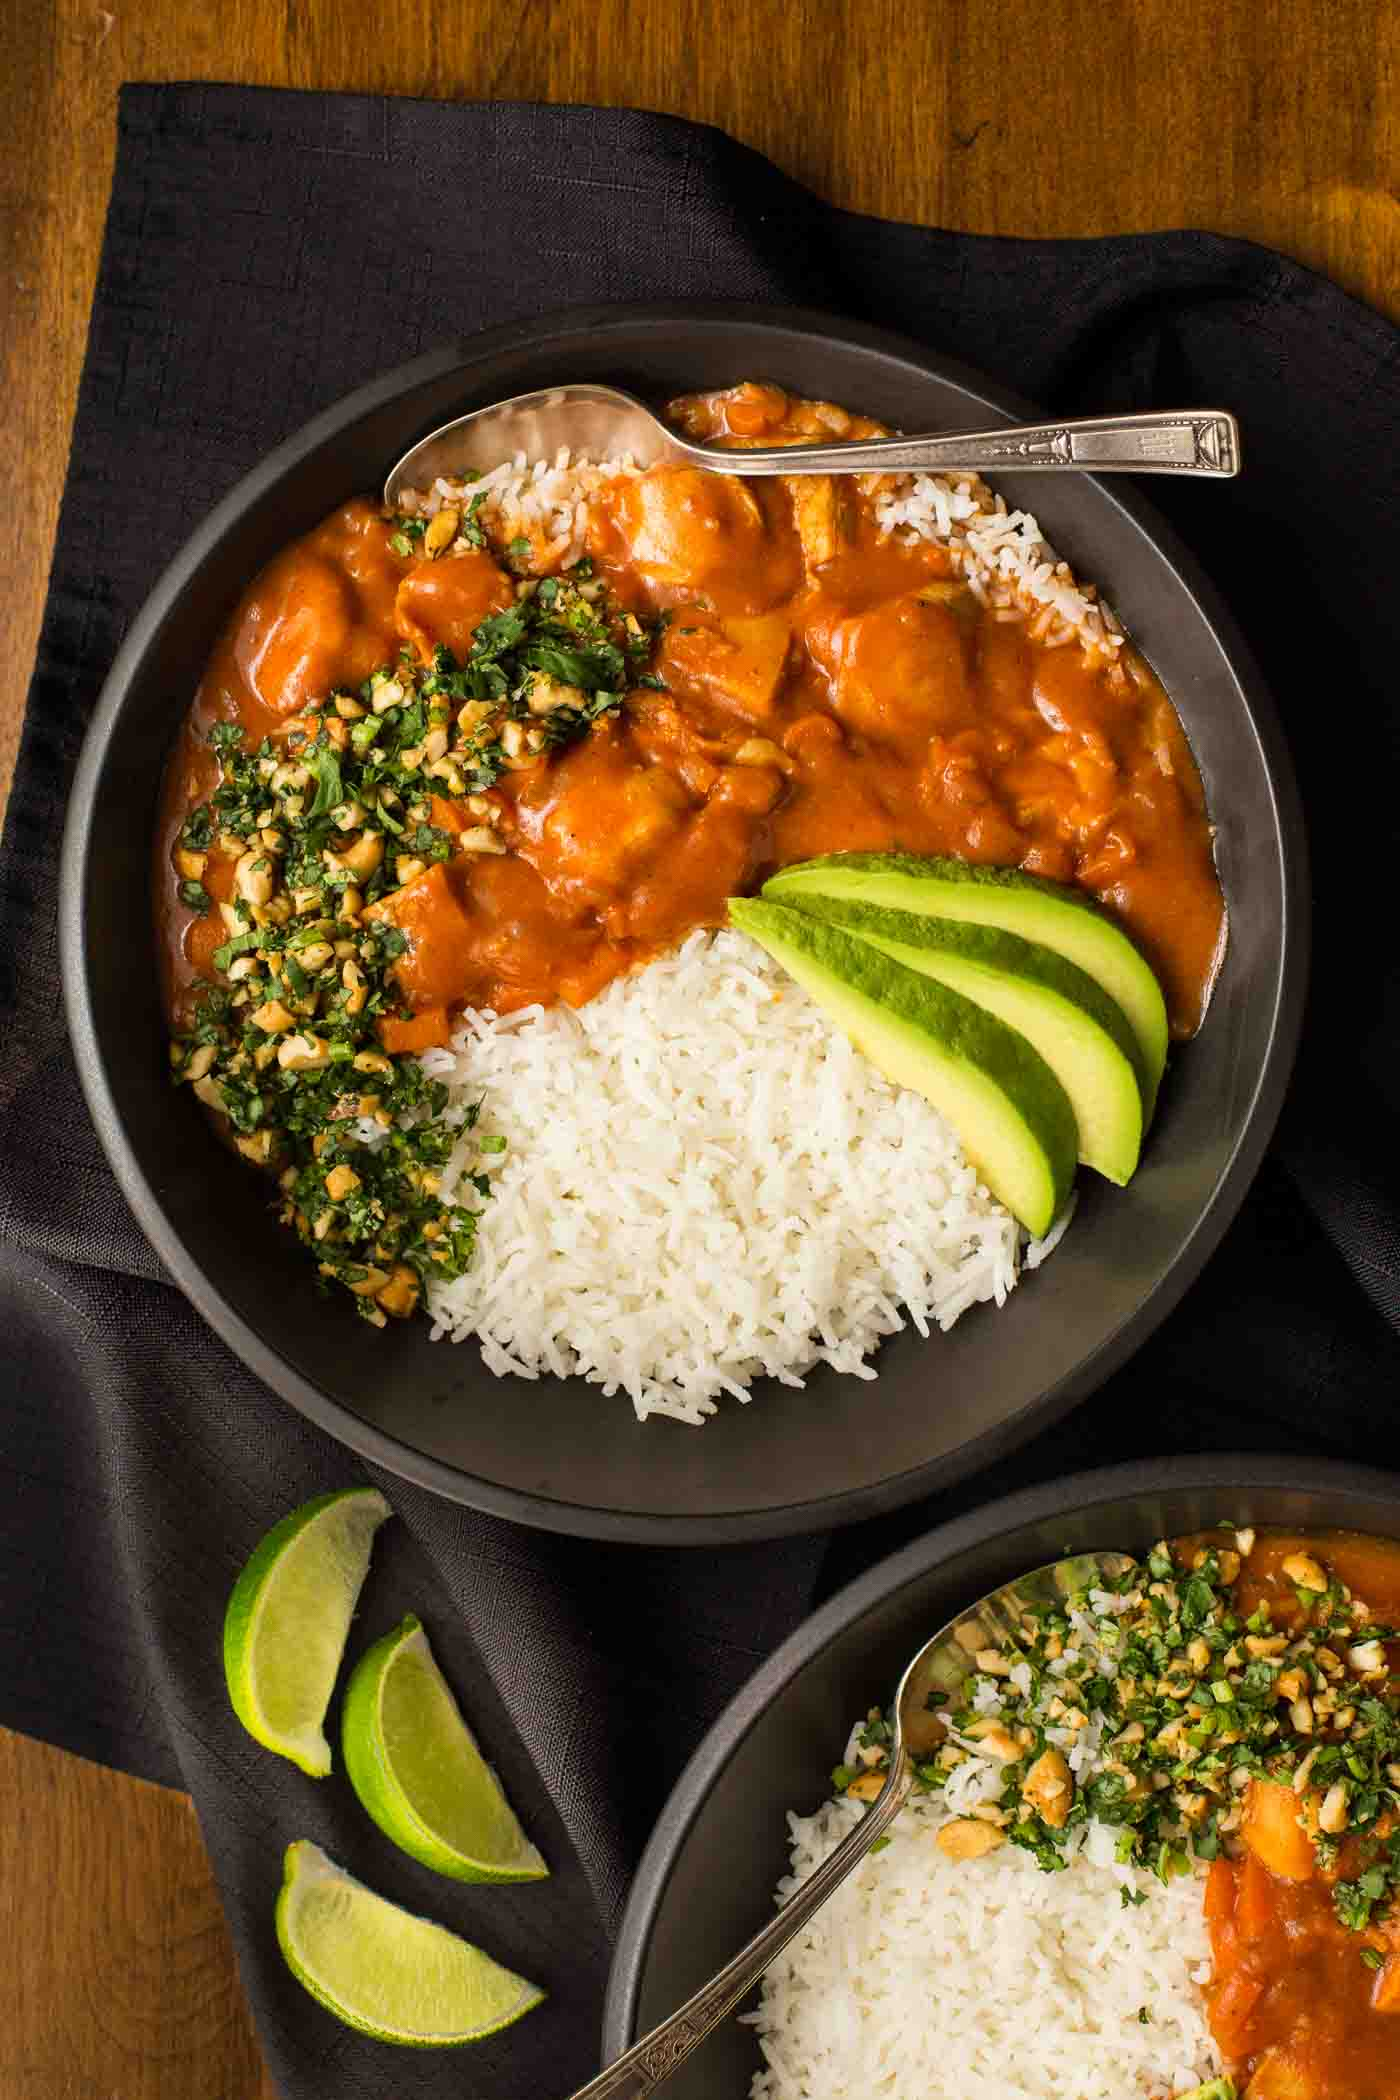 Overhead photo of two black bowls of Slow Cooker Indian Butter Chicken with rice, sliced avocados and cilantro cashew garnish.